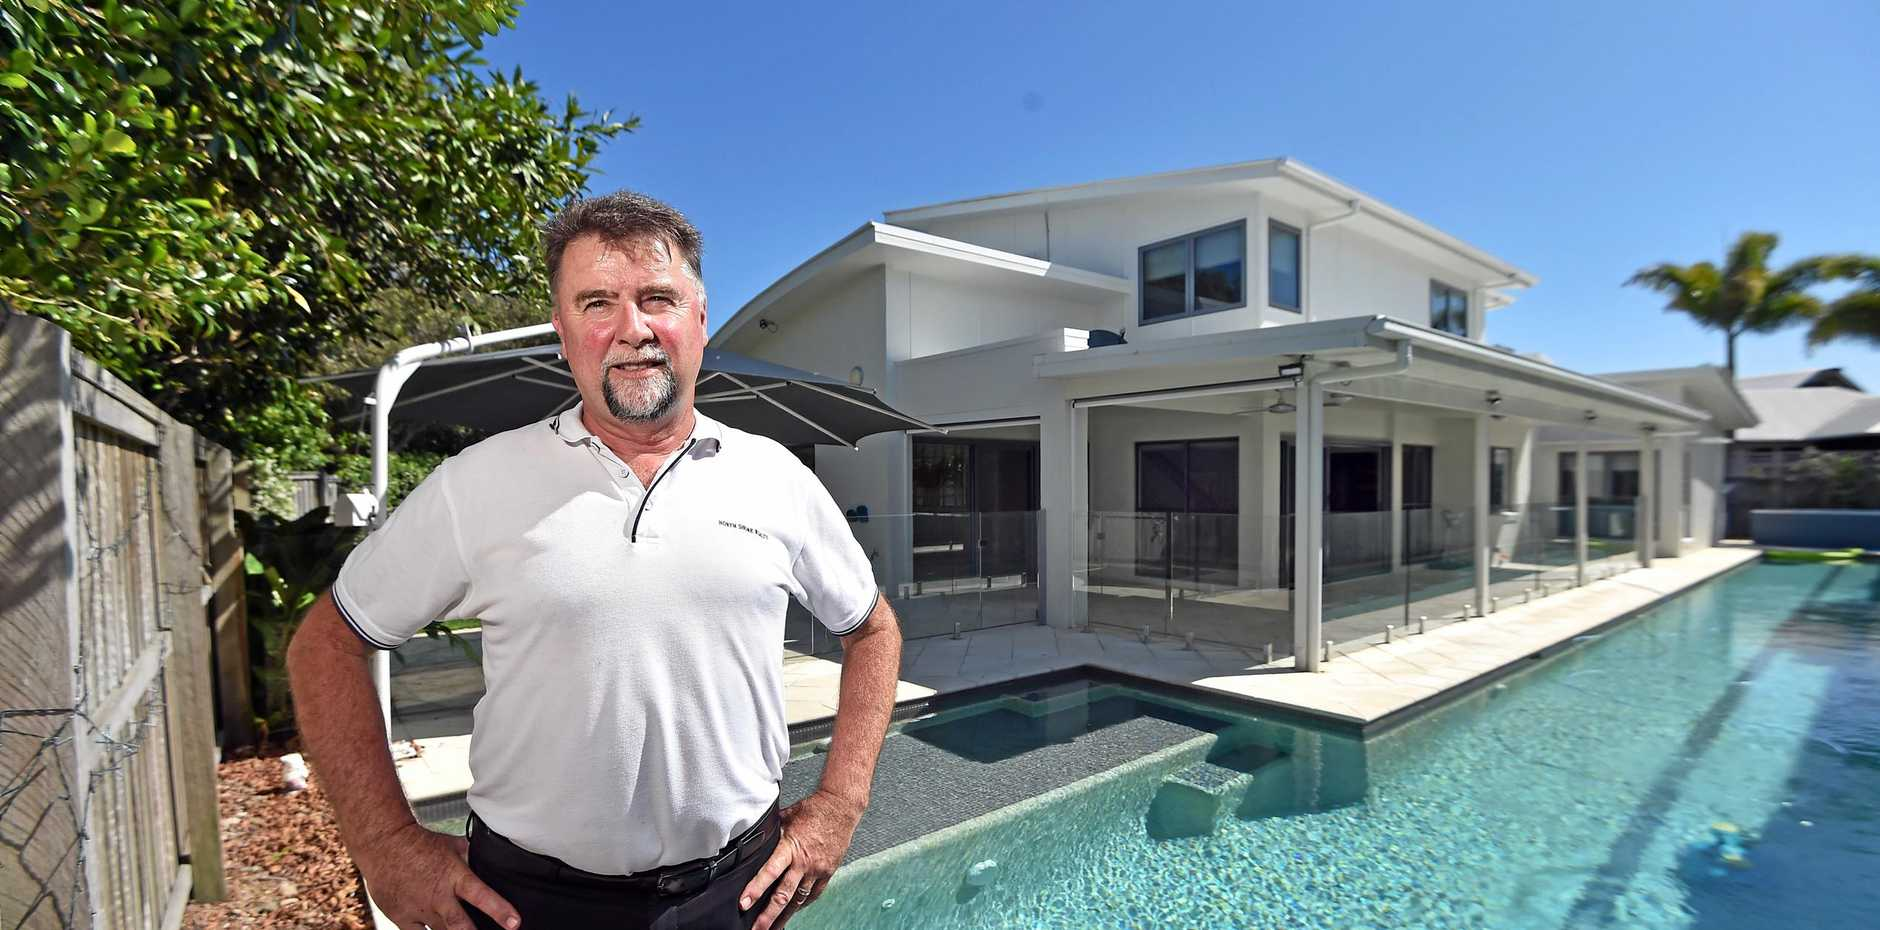 Real estate Mark McDonald has sold the same house three times in the past 12 months and everyone made money and happy with their deal.